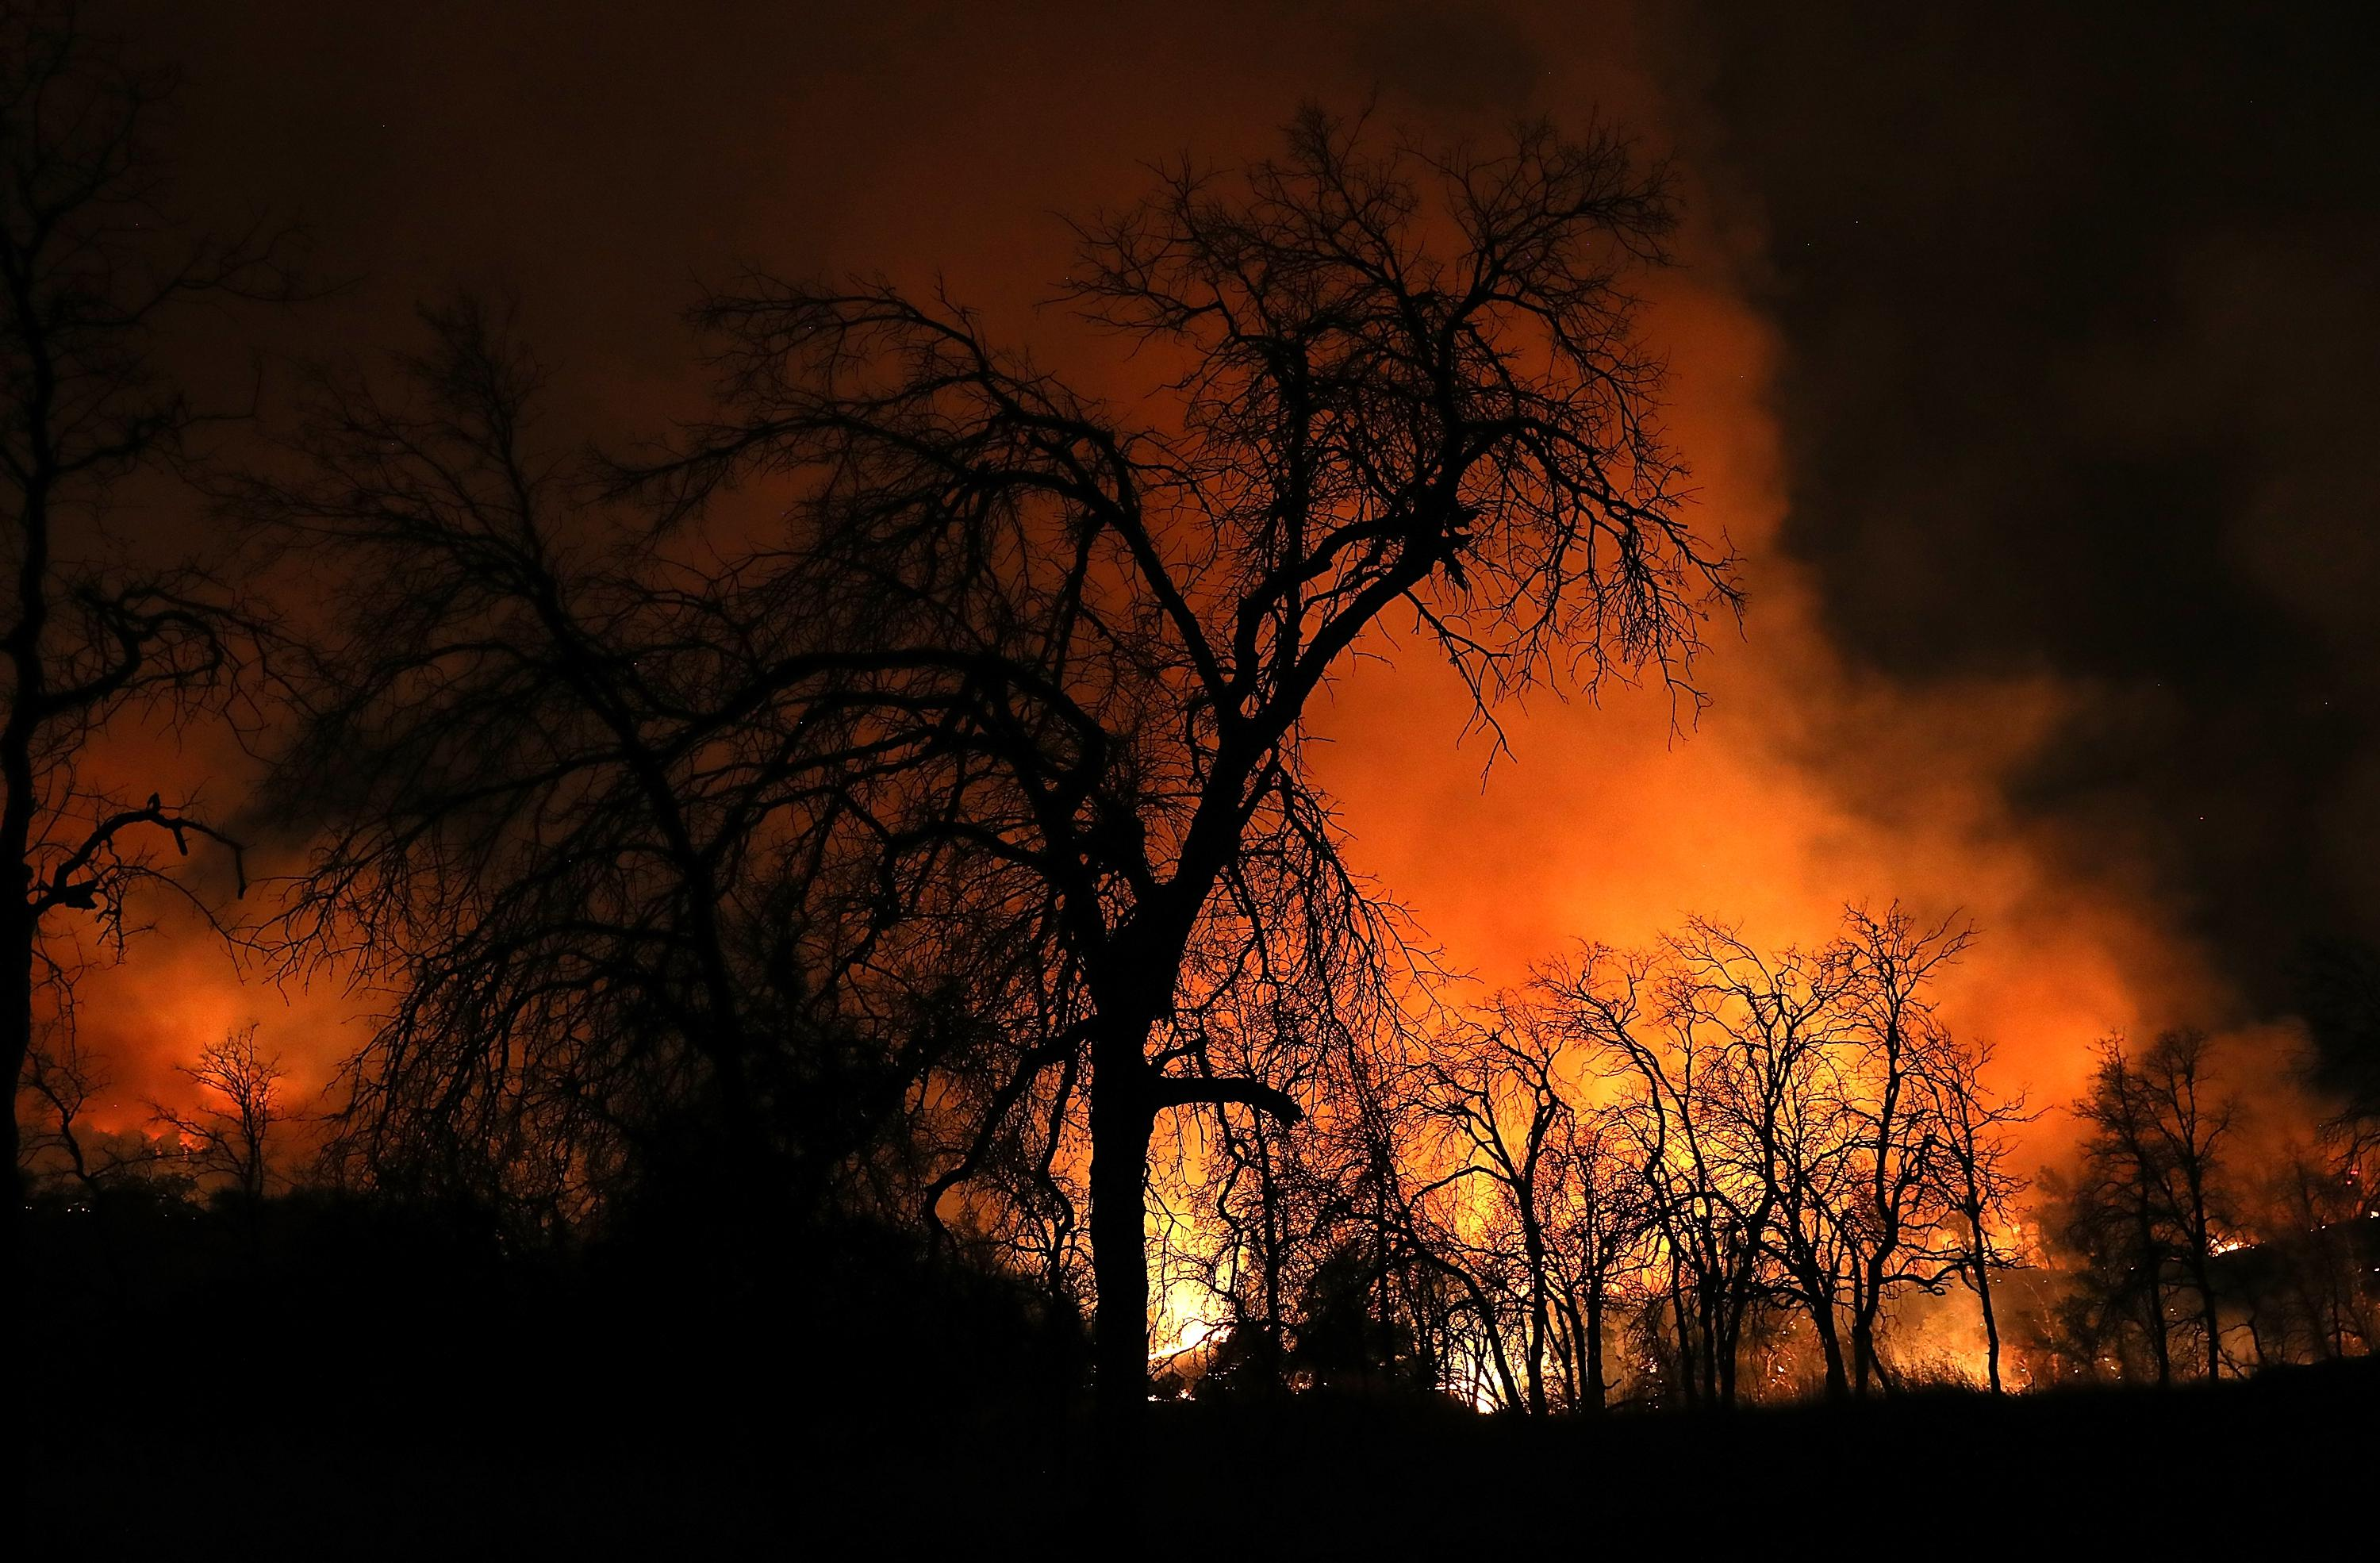 REDDING, CA - JULY 27:  An orange glow from the Carr Fire lights up burnt trees as the fire burns through dry brush on July 27, 2018 in Redding, California. A firefighter was killed battling the fast moving Carr Fire which has burned over 28,000 acres and destroyed dozens of homes. The fire is reportedly only 6 percent contained.  (Photo by Justin Sullivan/Getty Images)